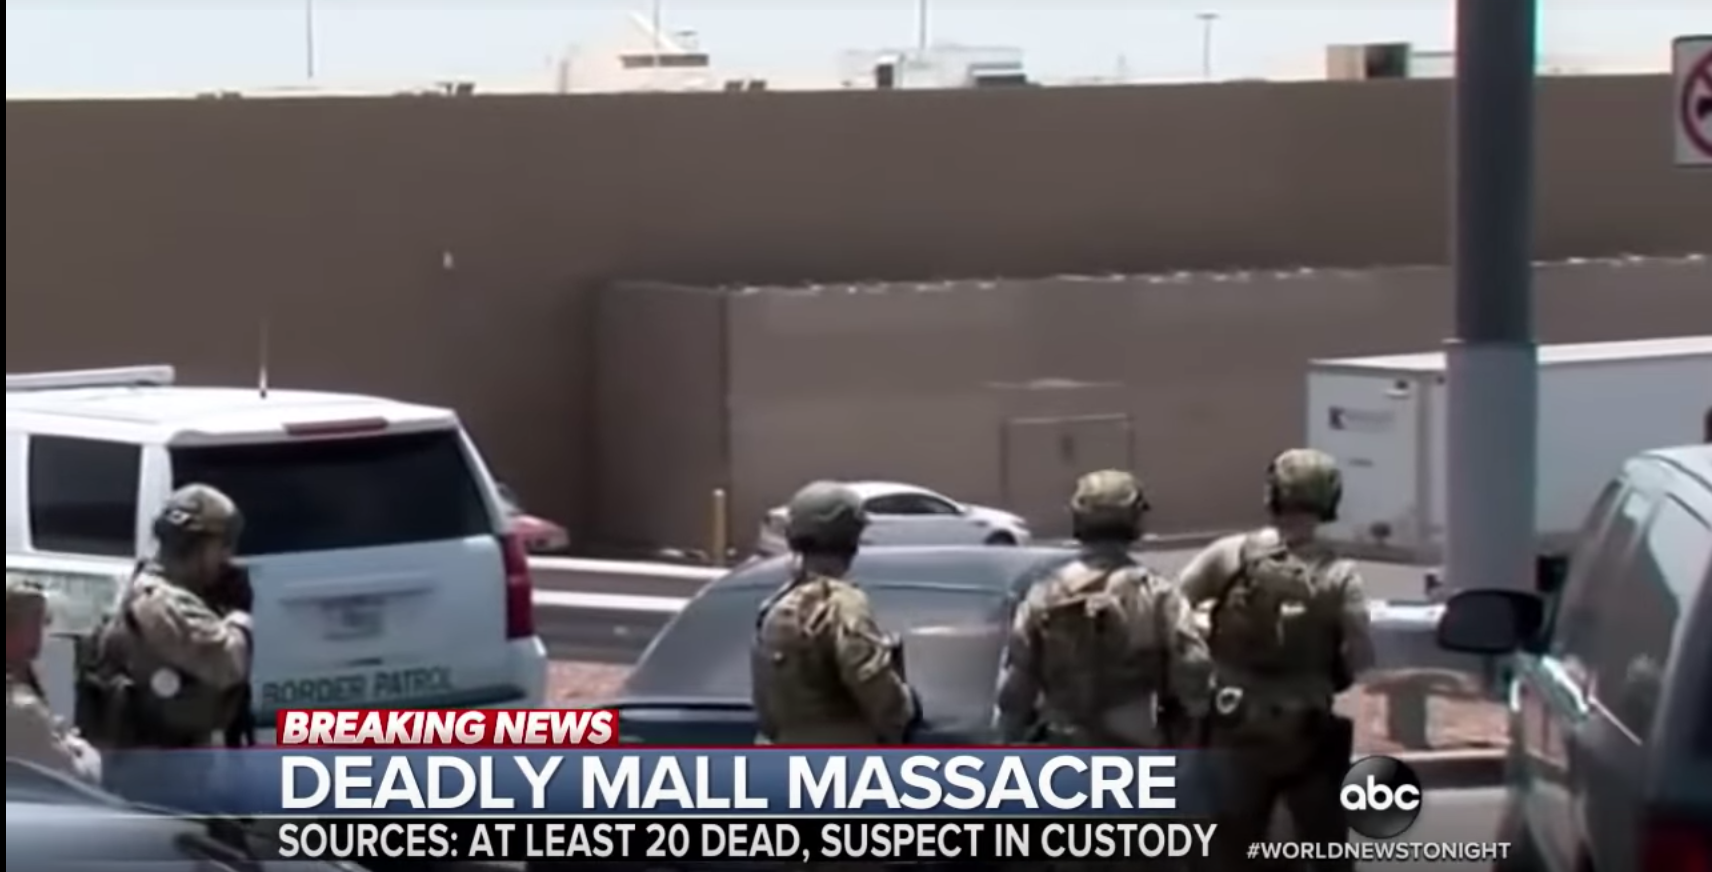 El Paso shooter likely to be deemed domestic terrorist following discovery of racist manifesto